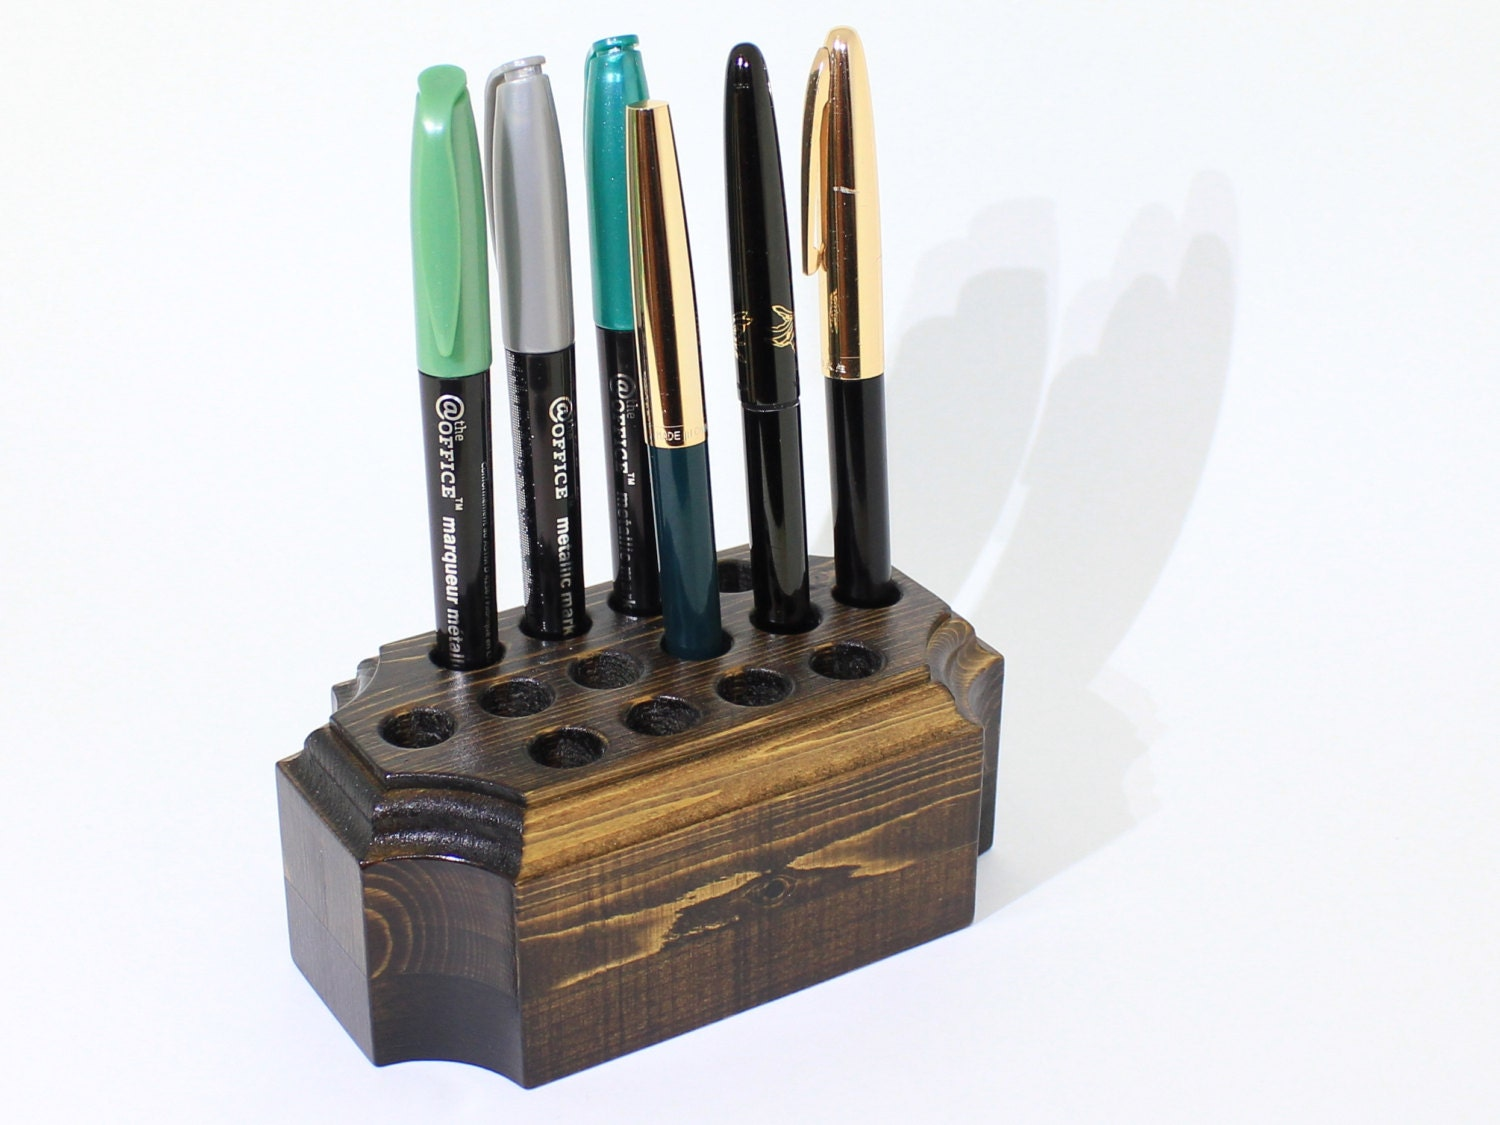 pen holder wooden desk caddy engraving tools organizer